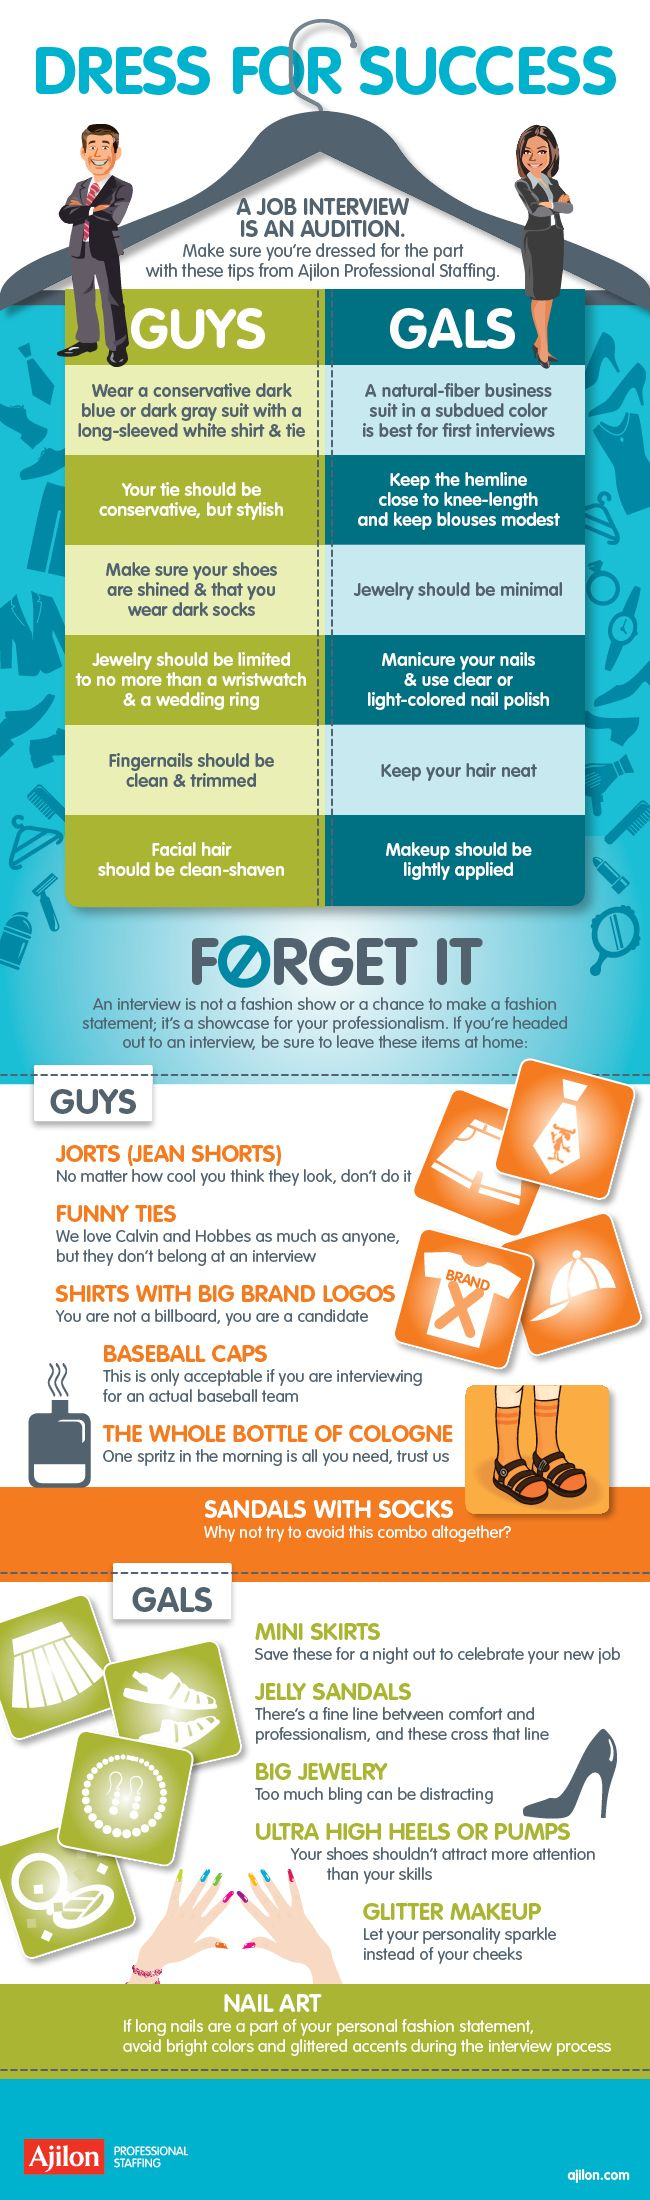 Dressing for Success - Infographic  Dress for success, Job